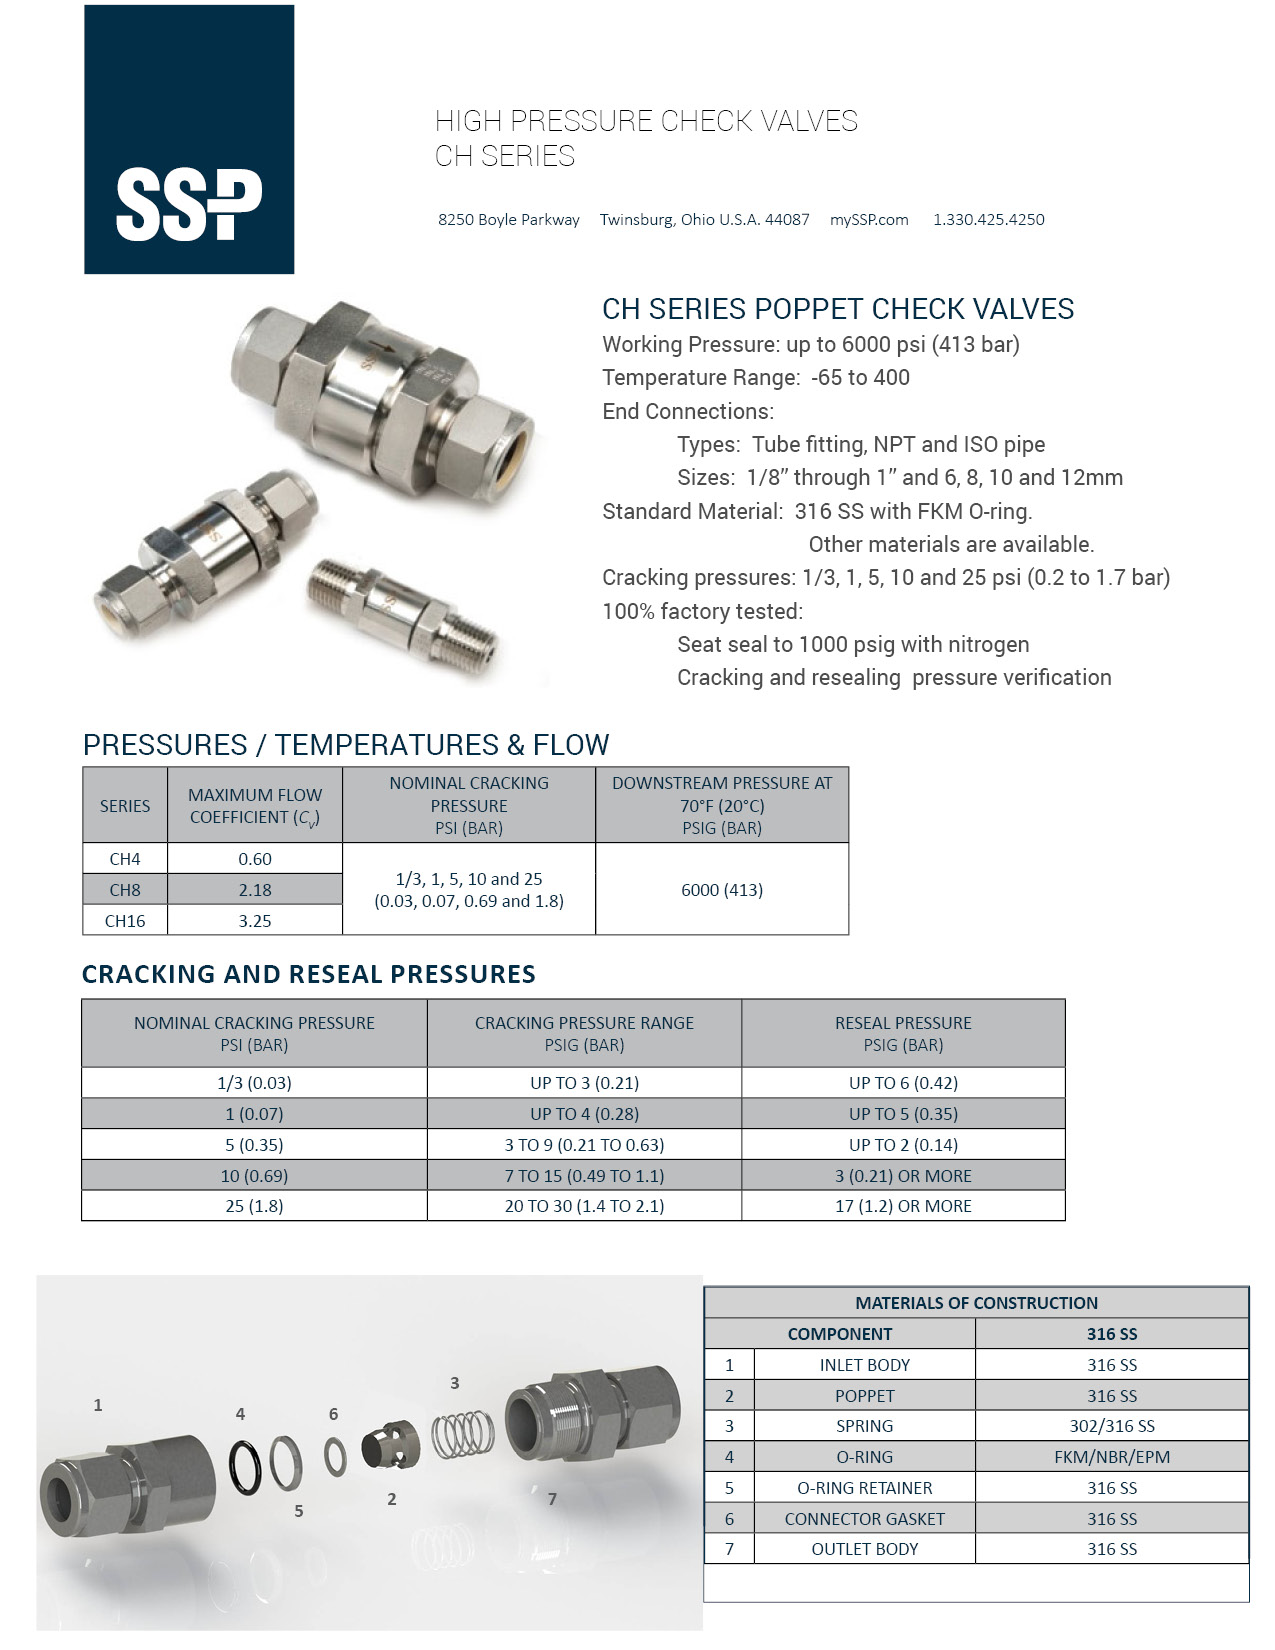 CH Series Check Valve Sell Sheet Cover Image